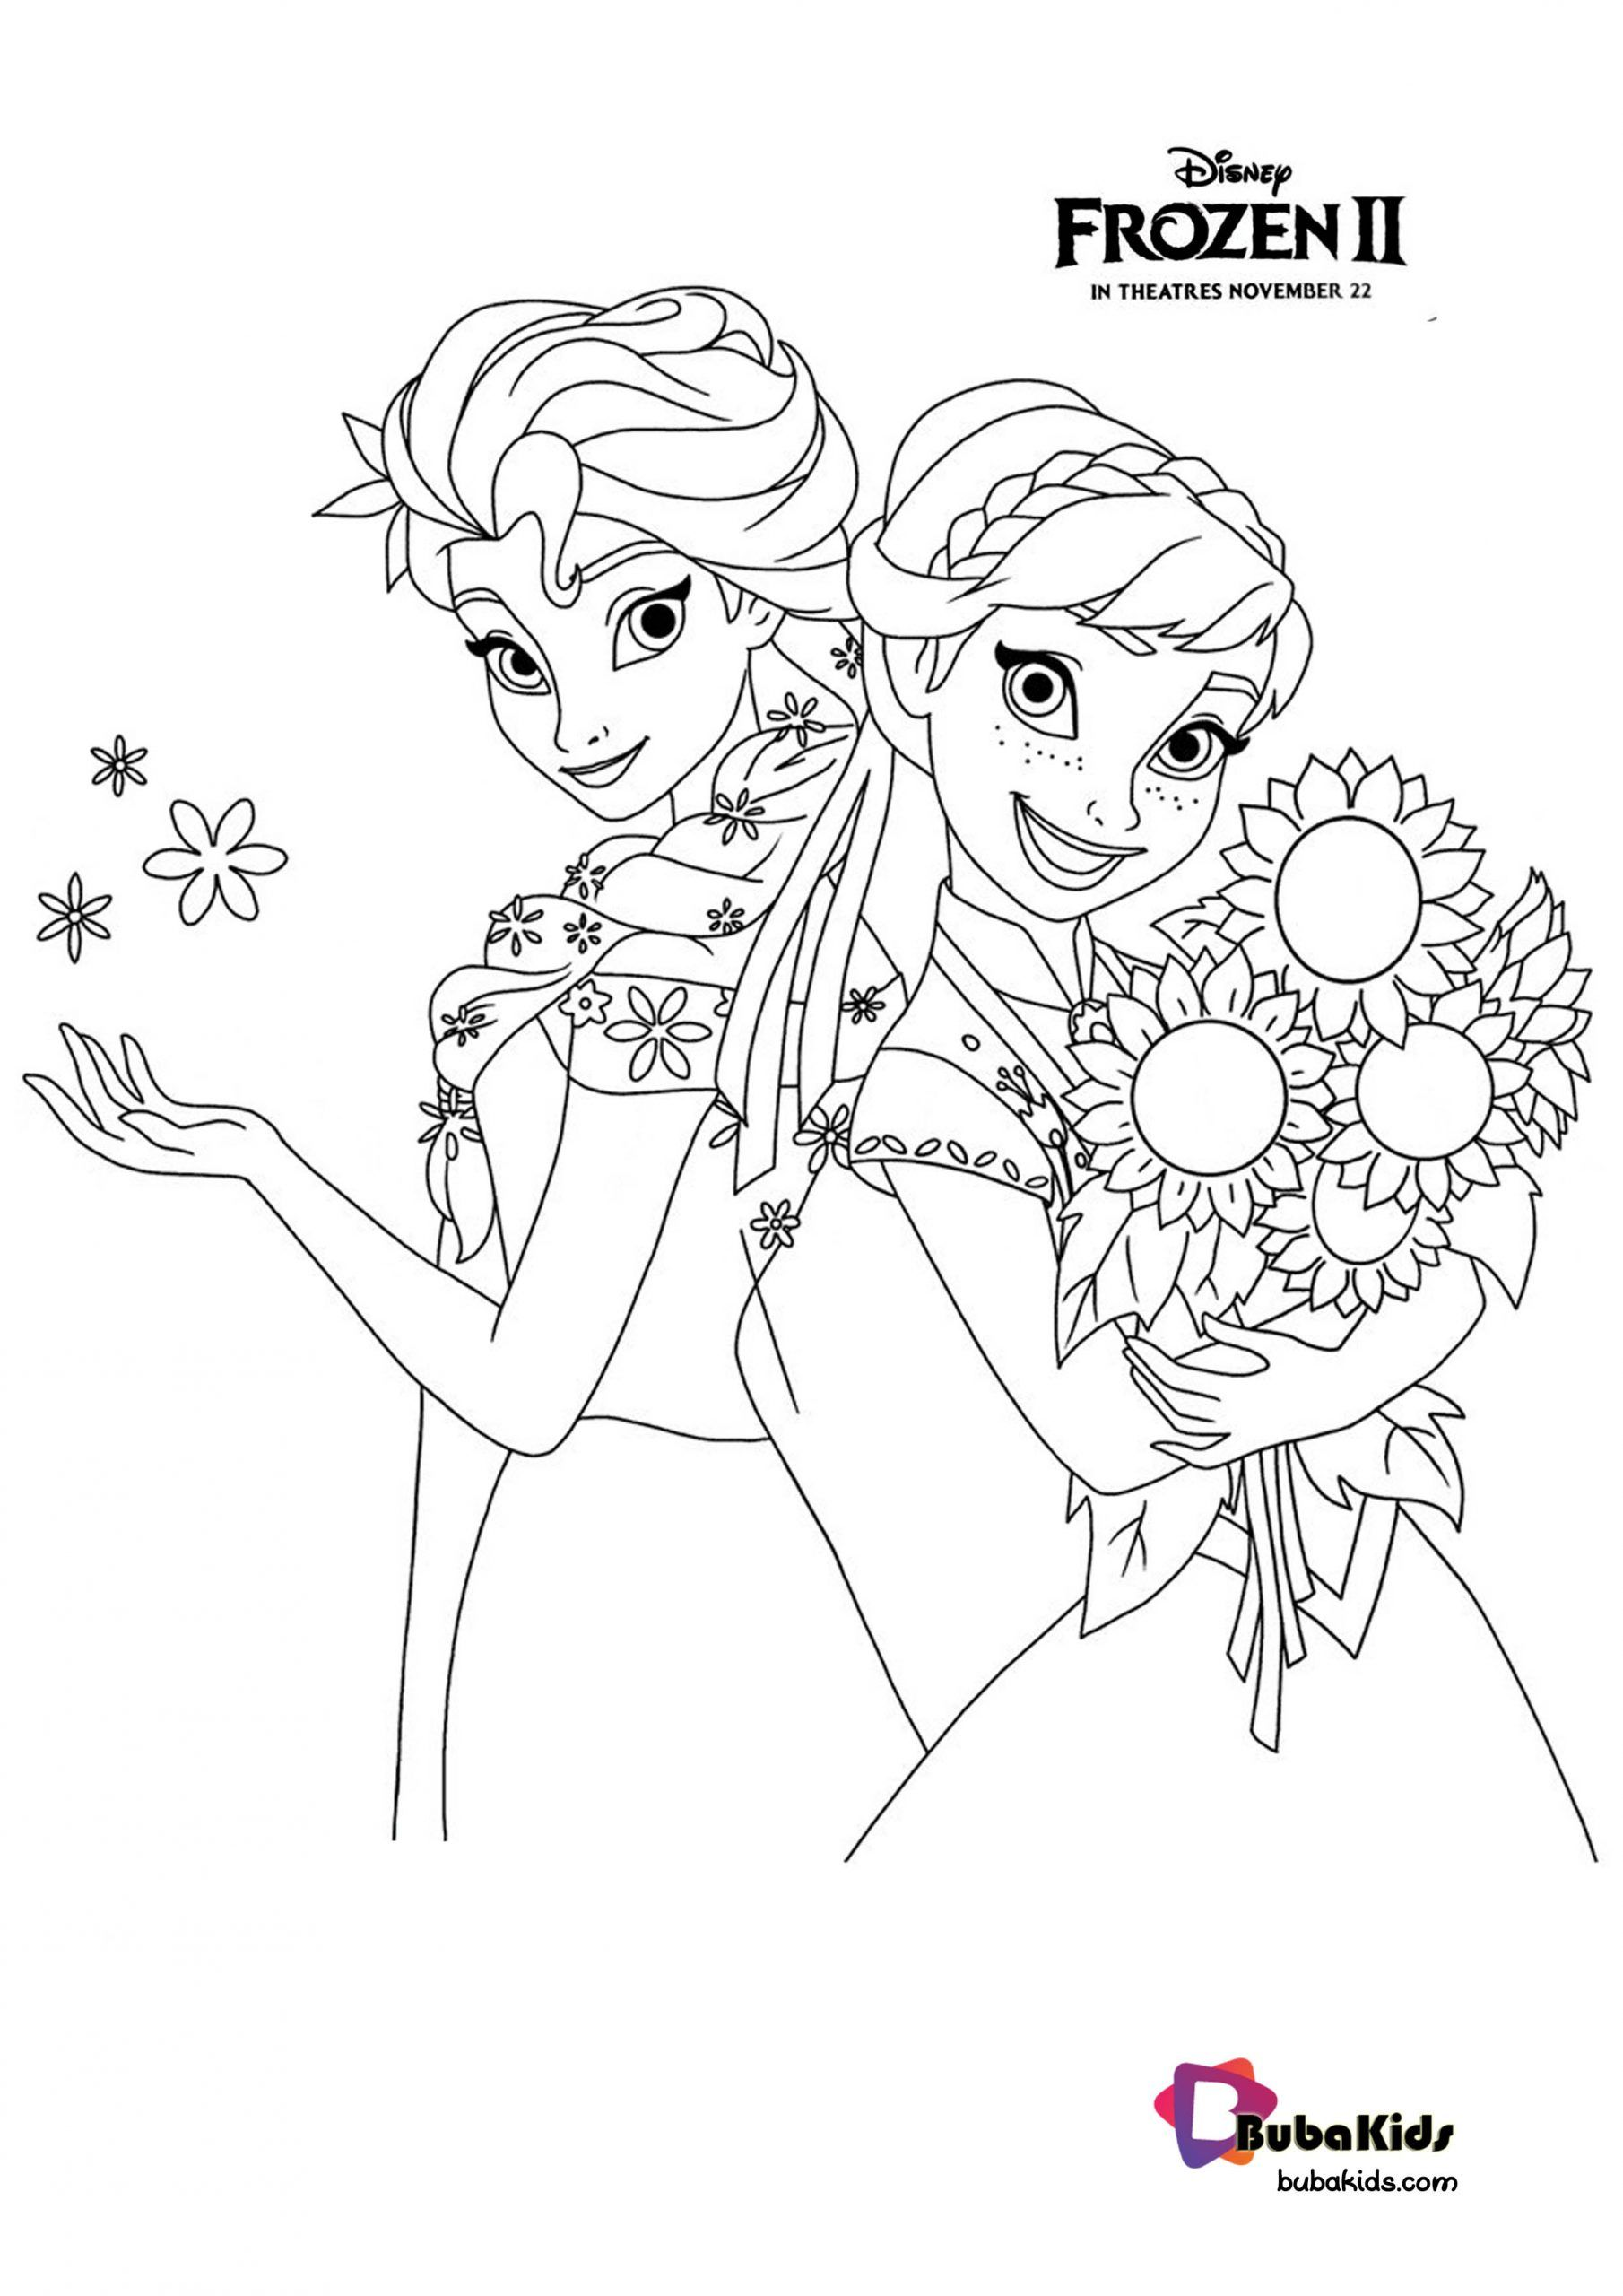 Frozen 2 Princess Anna Elsa Coloring Page Collection Of Cartoon Coloring Pages For Teenage Printable Elsa Coloring Pages Frozen Coloring Frozen Coloring Pages